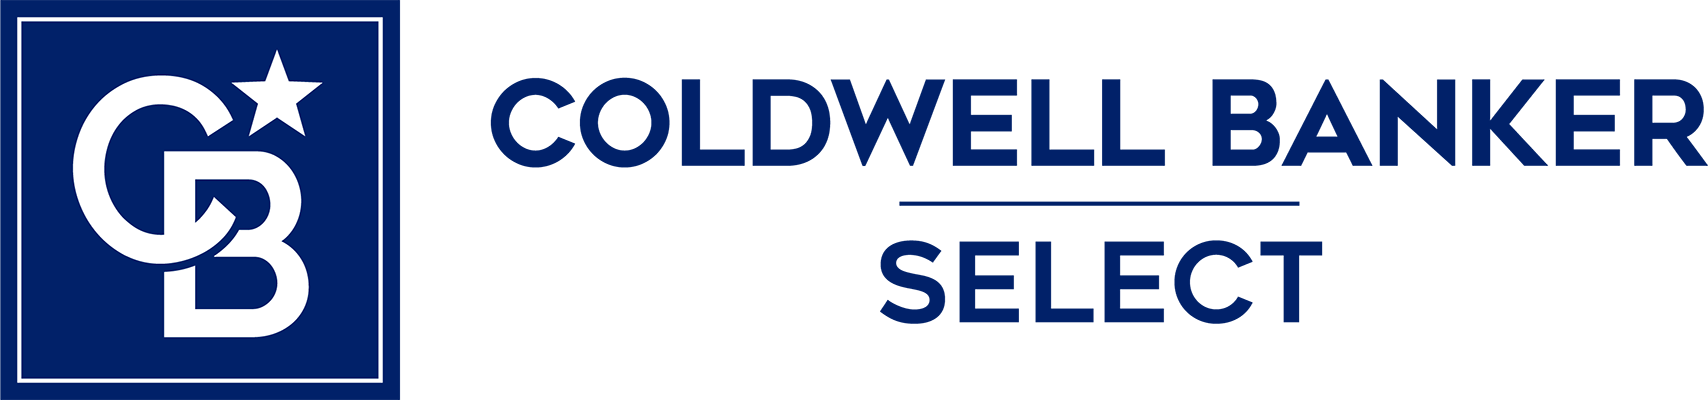 Coldwell Banker Select Commercial Logo